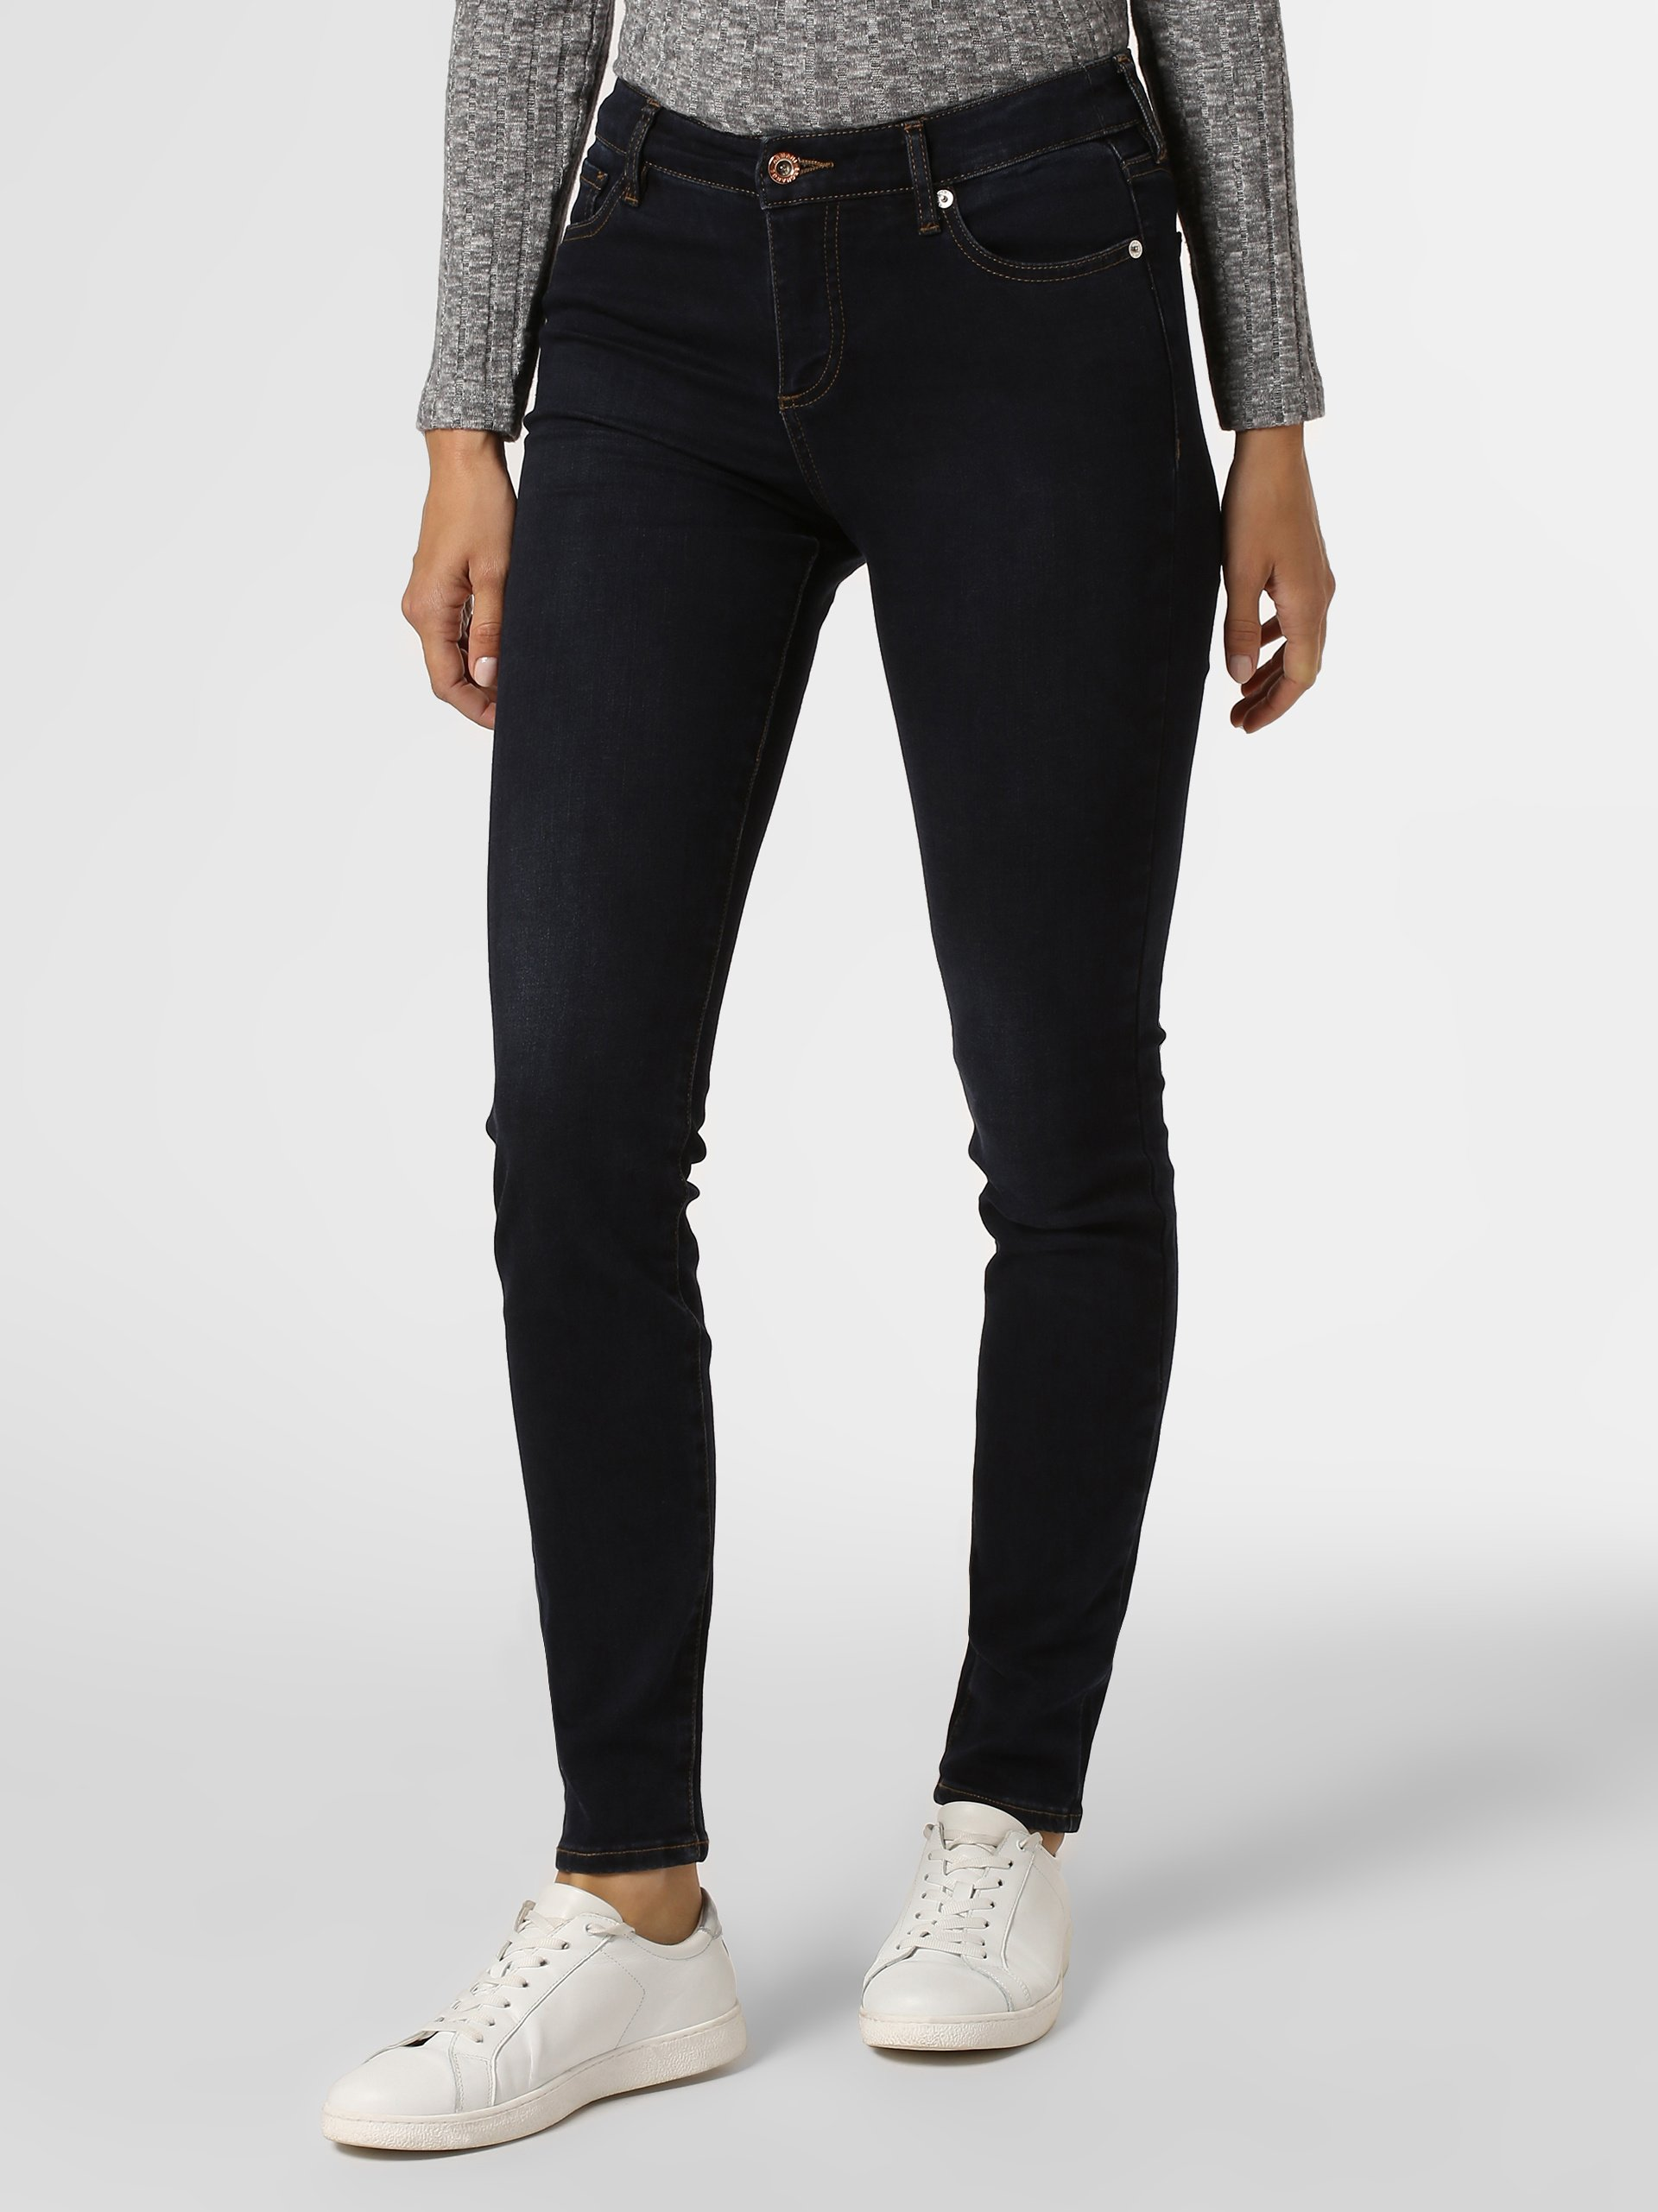 Armani Exchange Damen Jeans